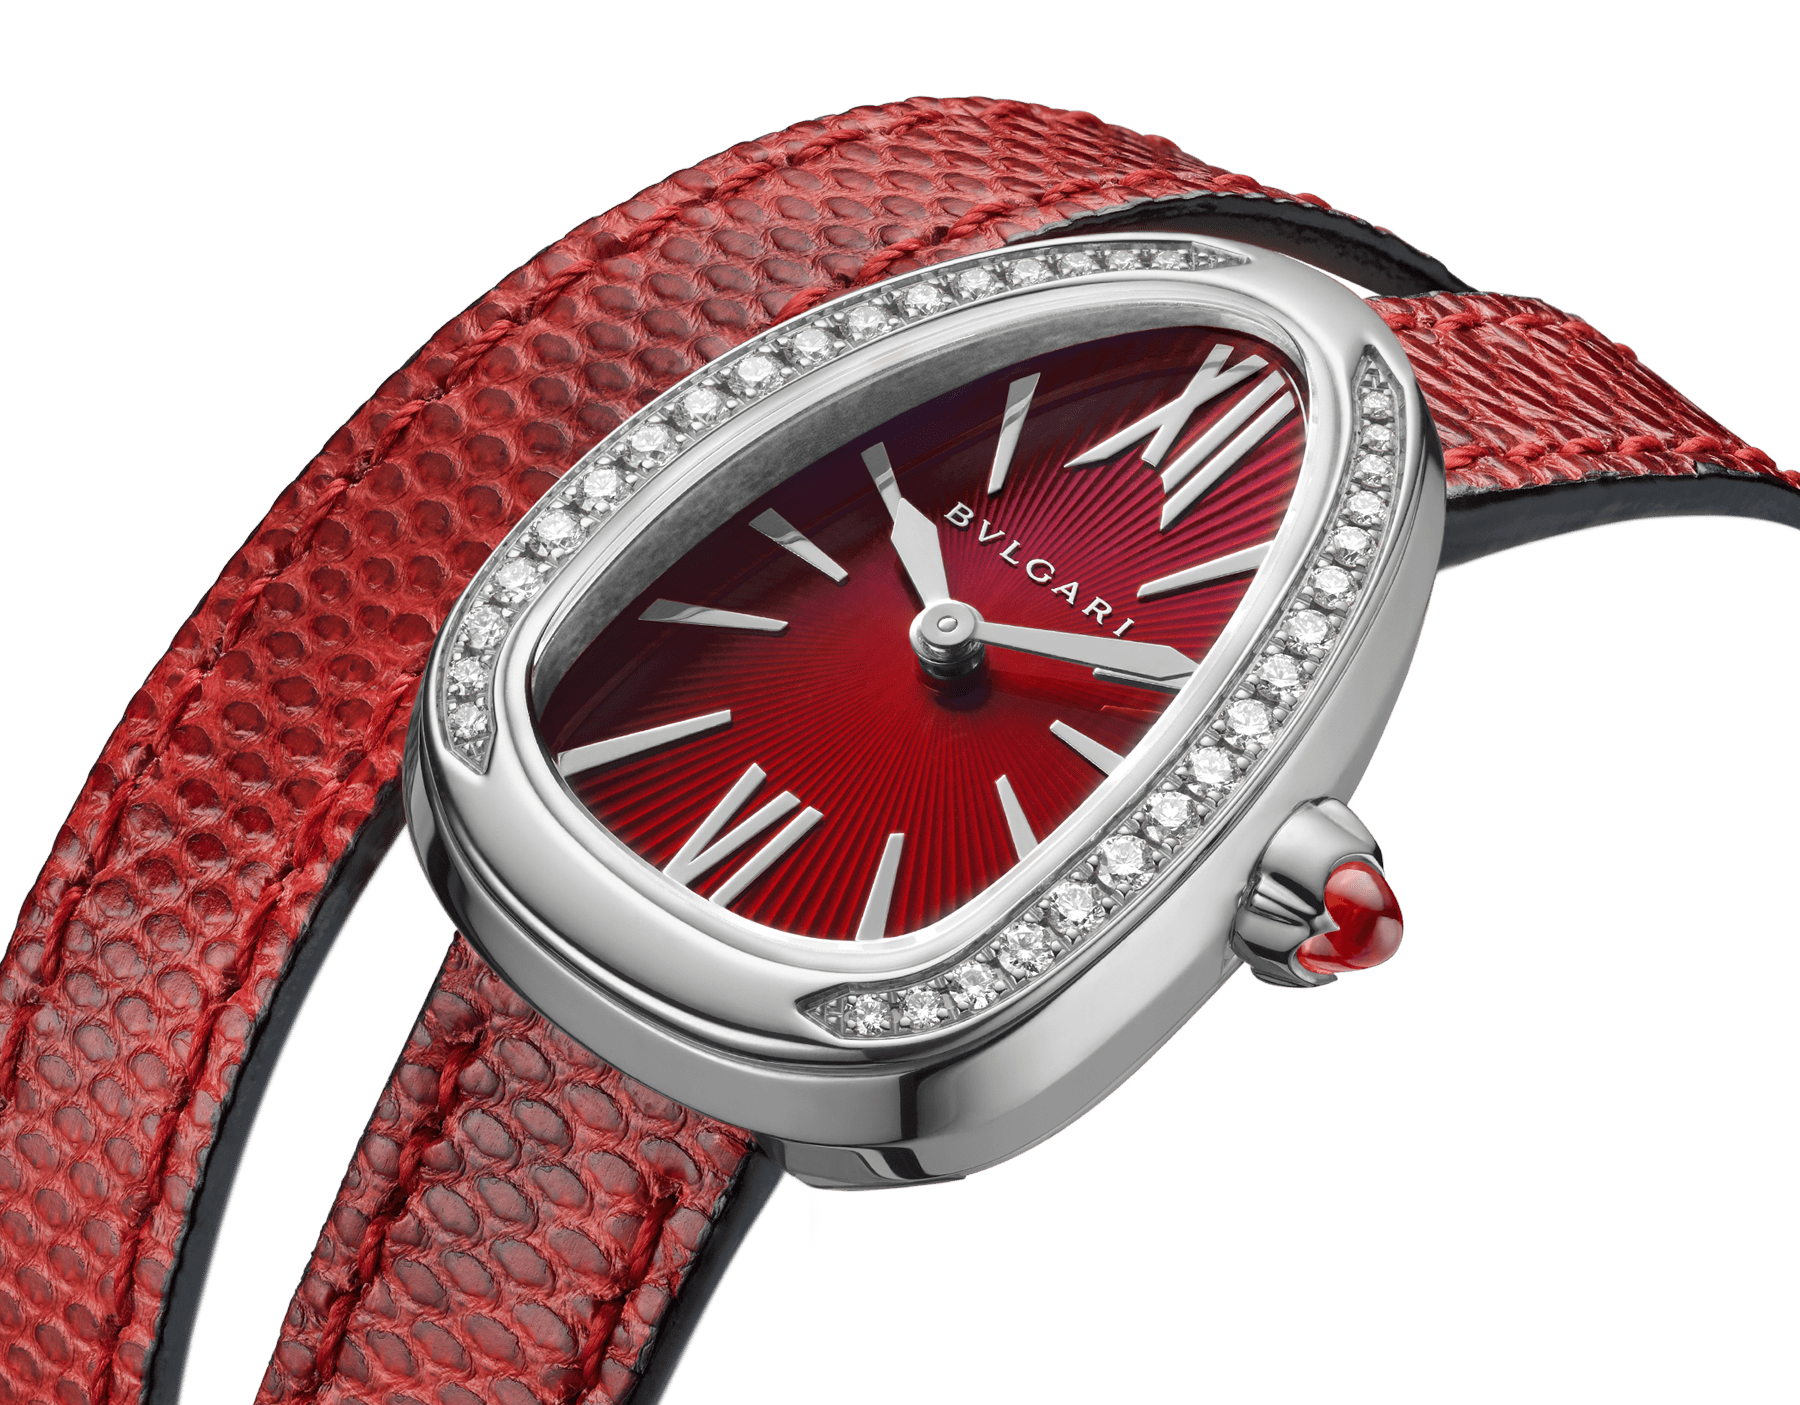 Serpenti watch with stainless steel case set with diamonds, red lacquered dial and interchangeable double spiral bracelet in red karung leather. 102780 image 3